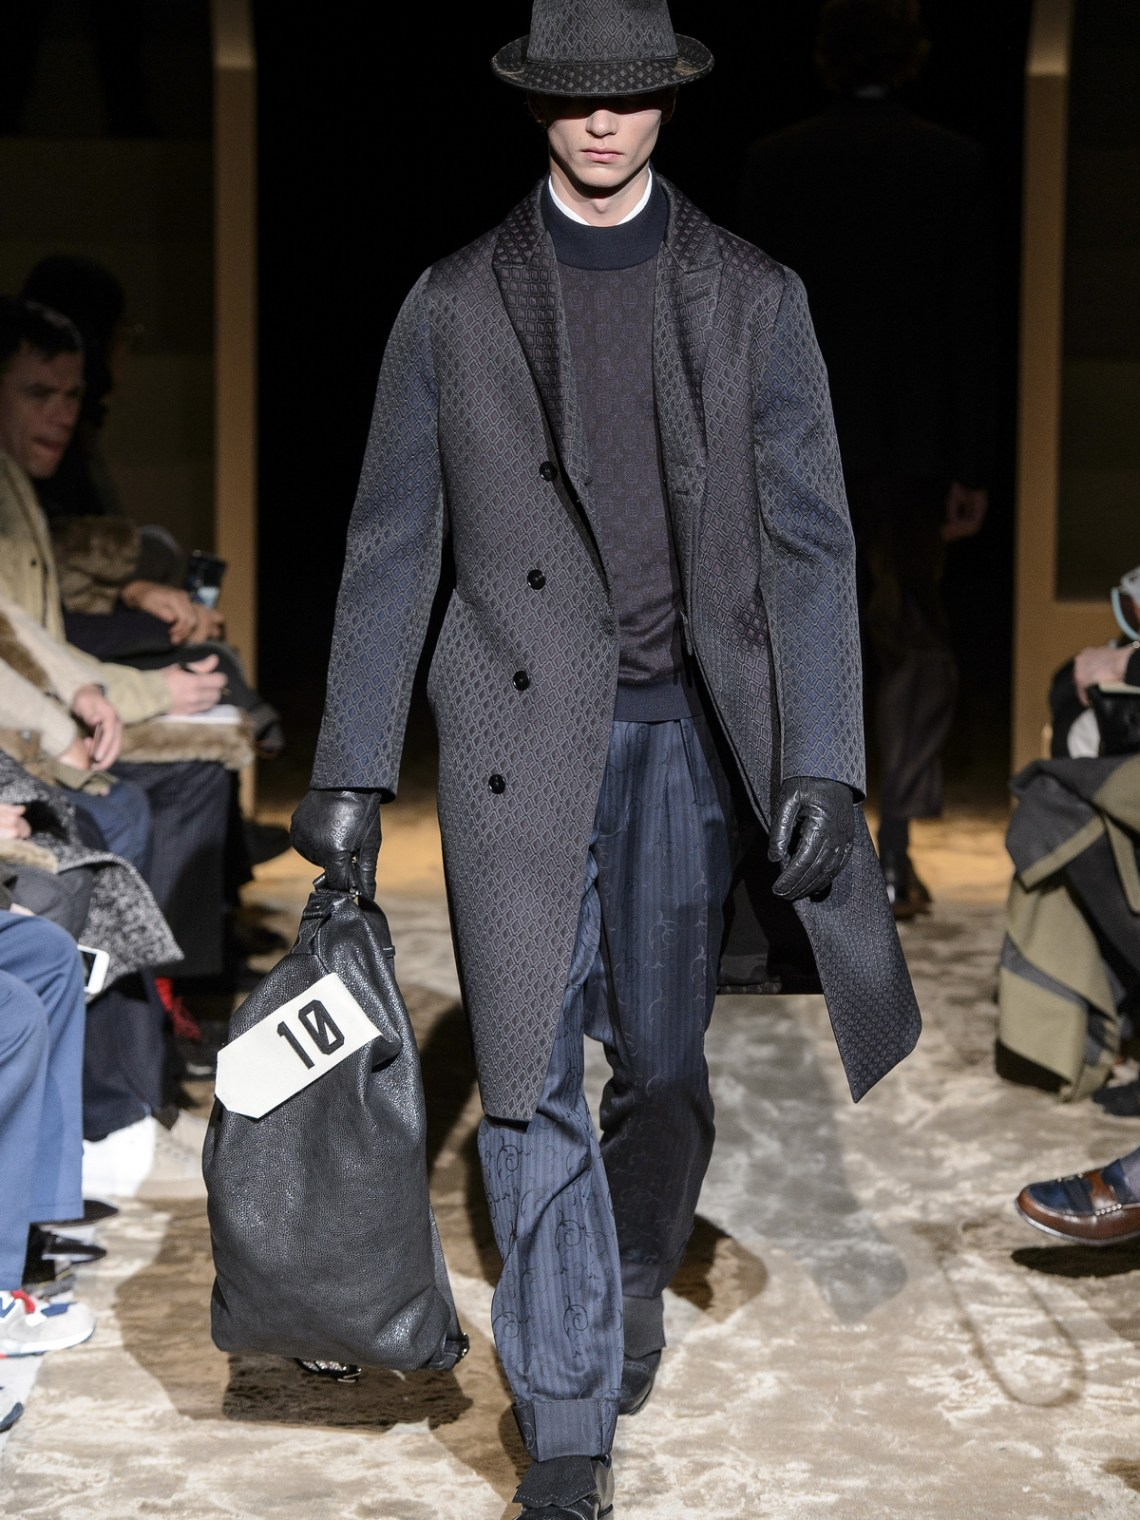 ERMENEGILDO ZEGNA FALL/WINTER 2016-2017